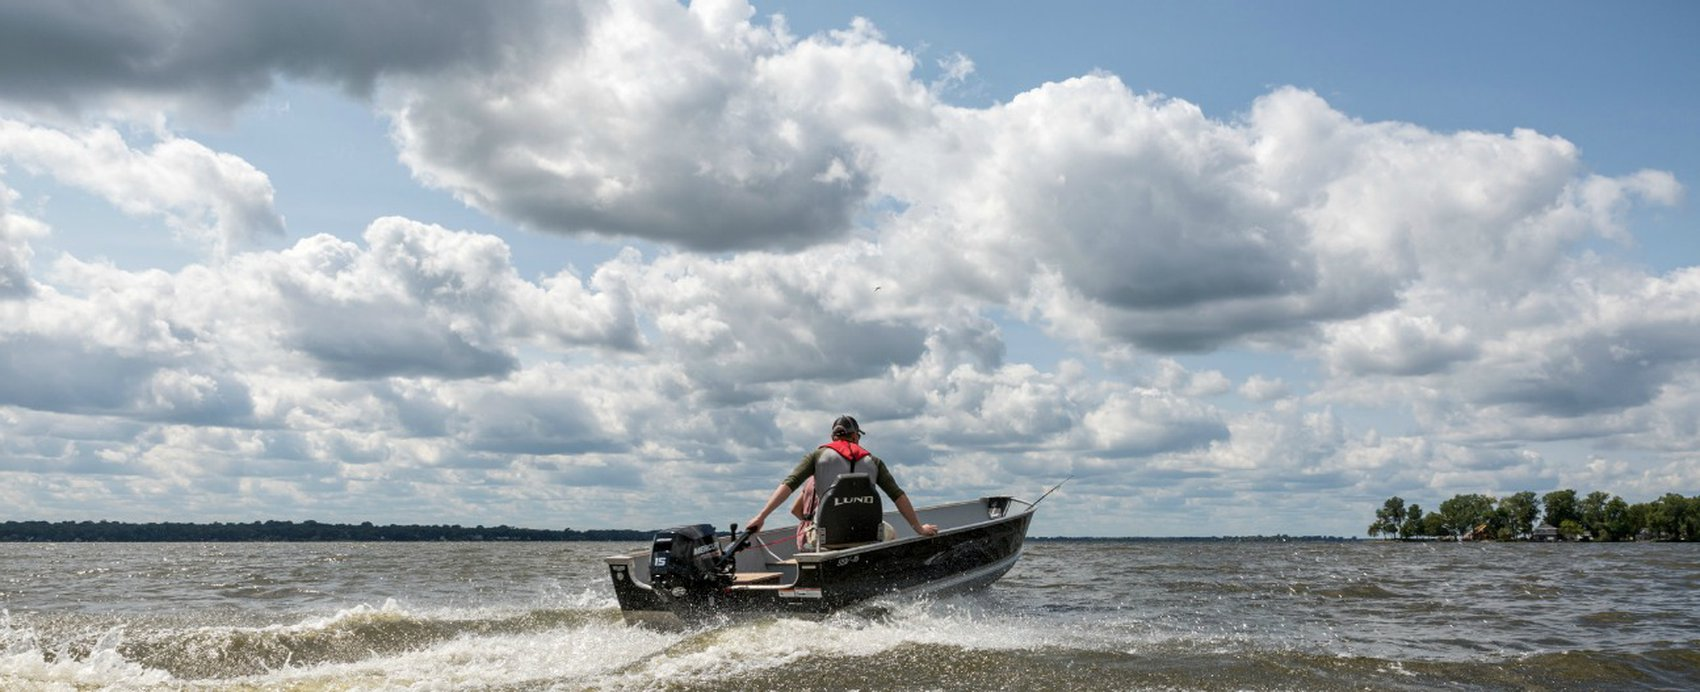 Mercury Dockline Small Outboards Are Of Big Importance Mercury Marine Mercury Marine